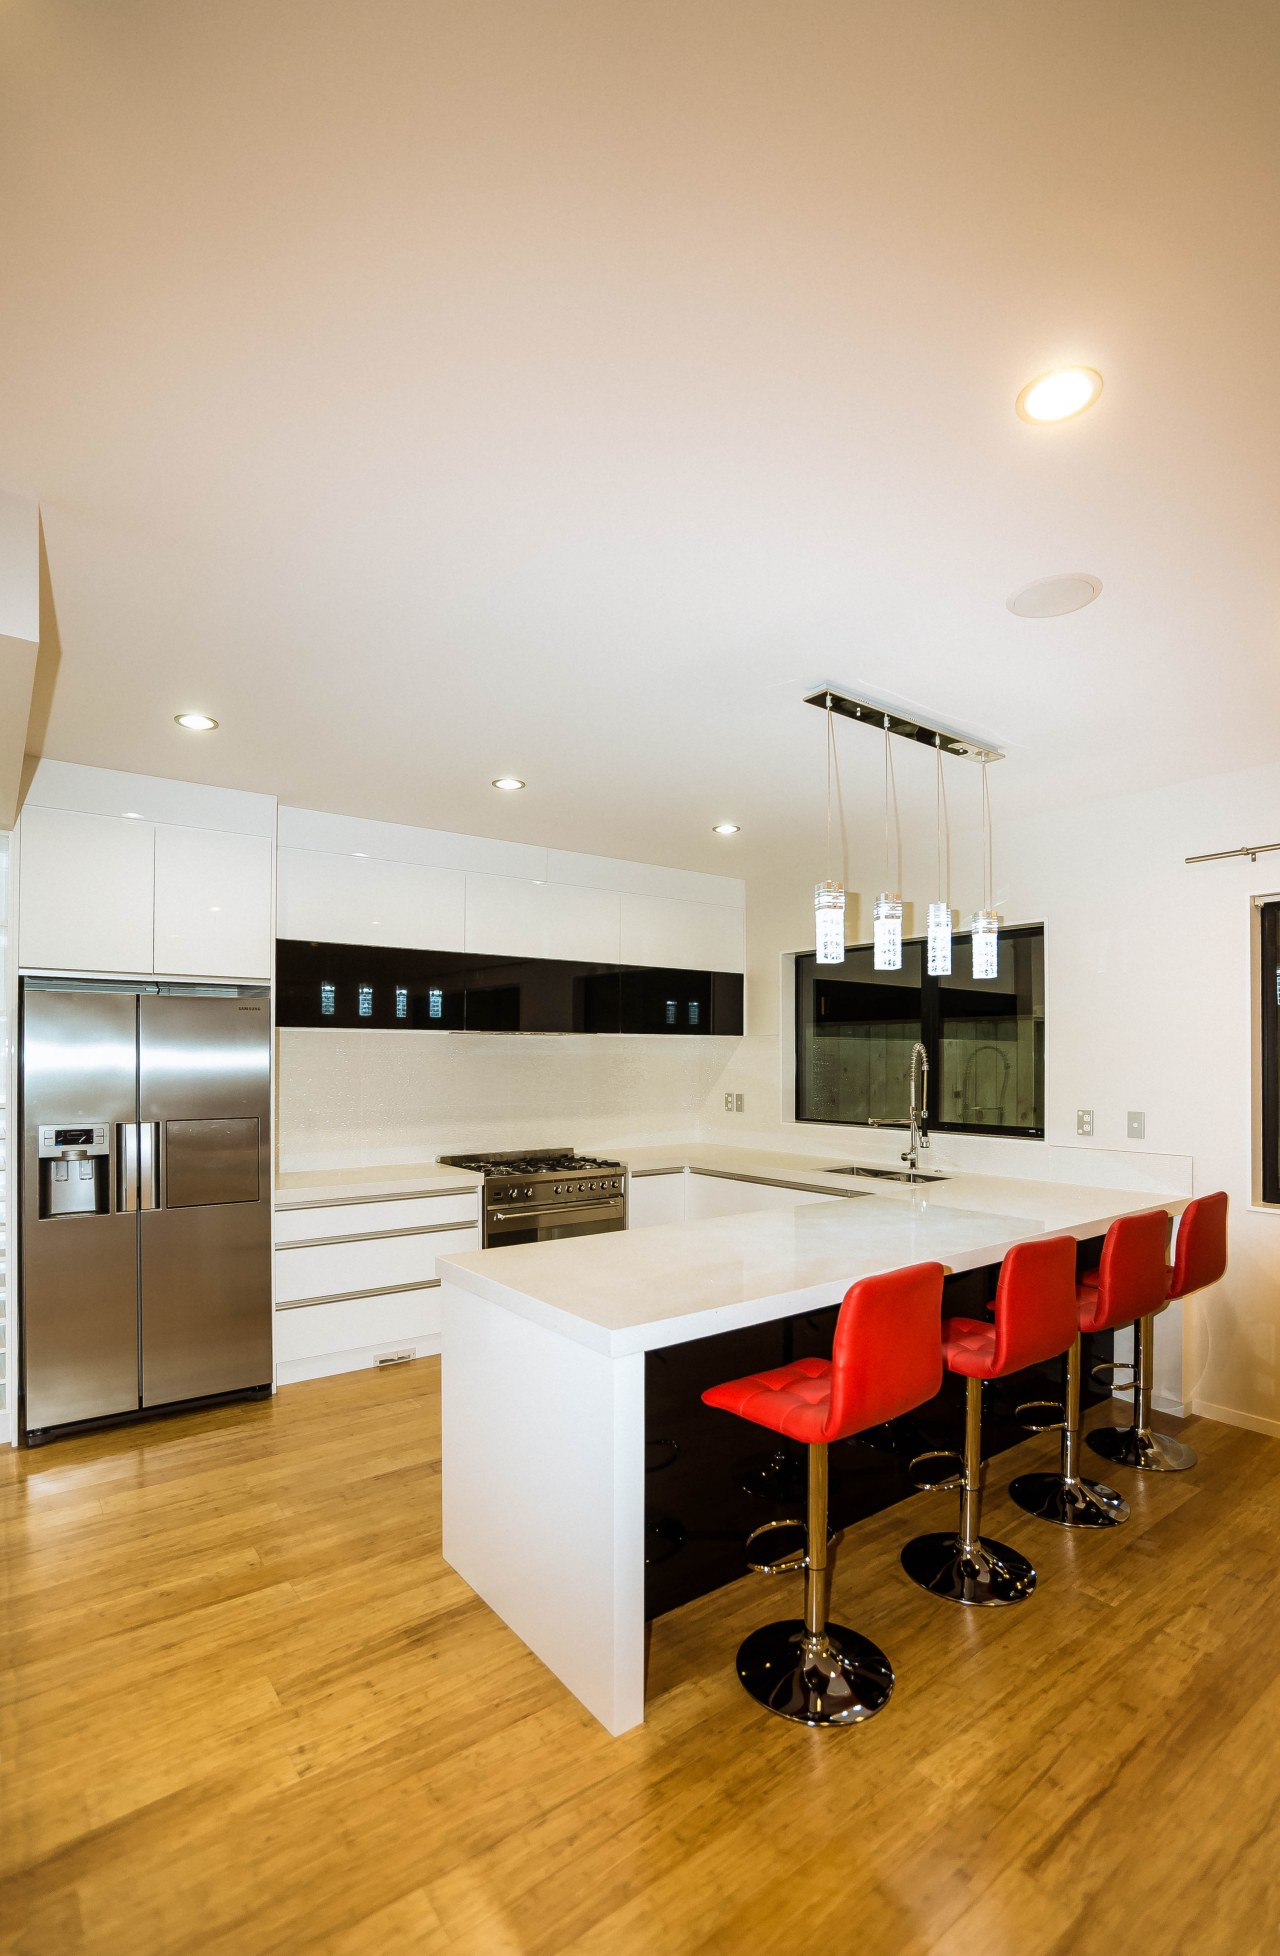 Reno4u has a solution to every tricky kitchen ceiling, countertop, floor, flooring, furniture, hardwood, interior design, kitchen, laminate flooring, real estate, room, table, wood, wood flooring, white, orange